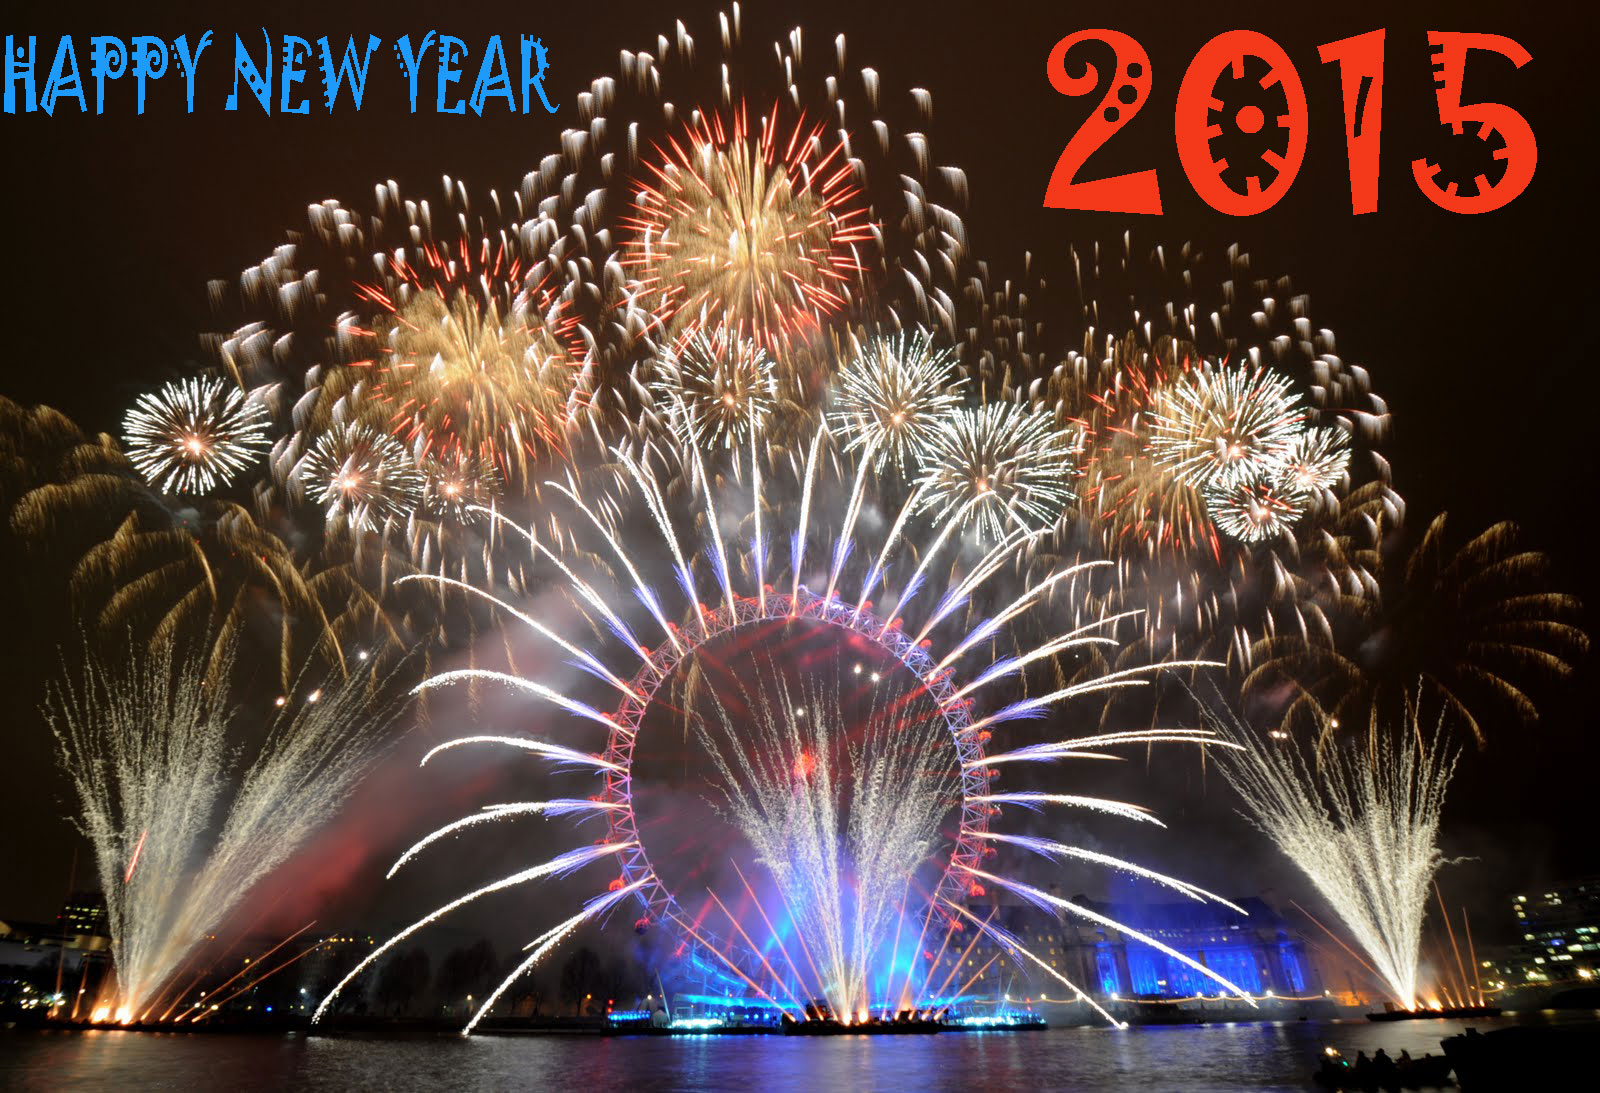 Happy New Year 2015 Desktop Wallpapers Hd Chainimage 1600x1093